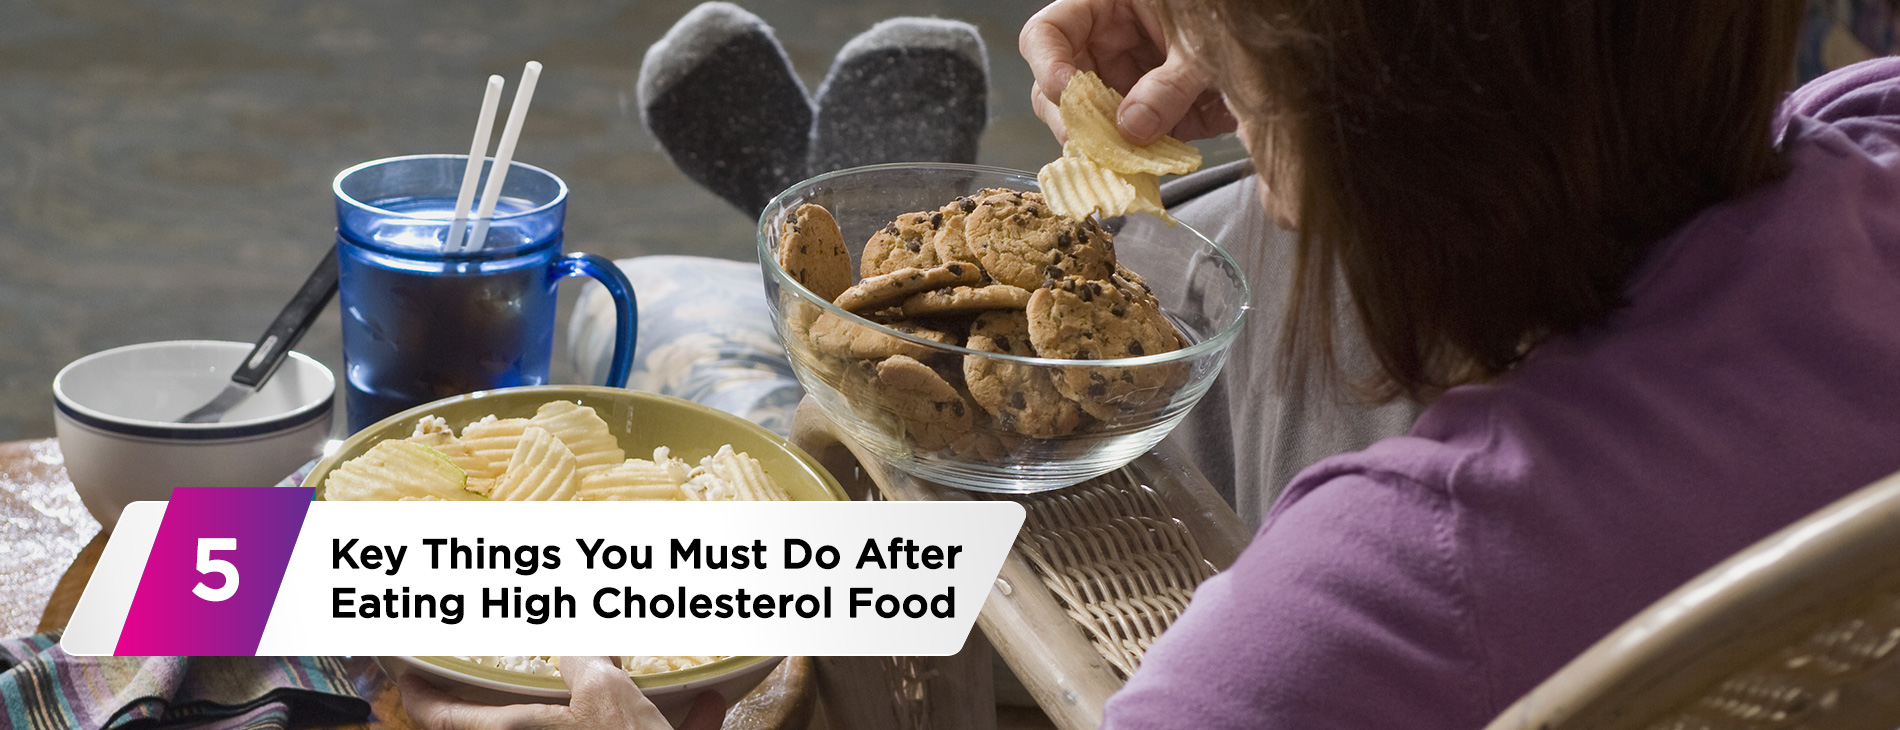 Key-Things-You-Must-Do-After-Eating-High-Cholesterol-Food